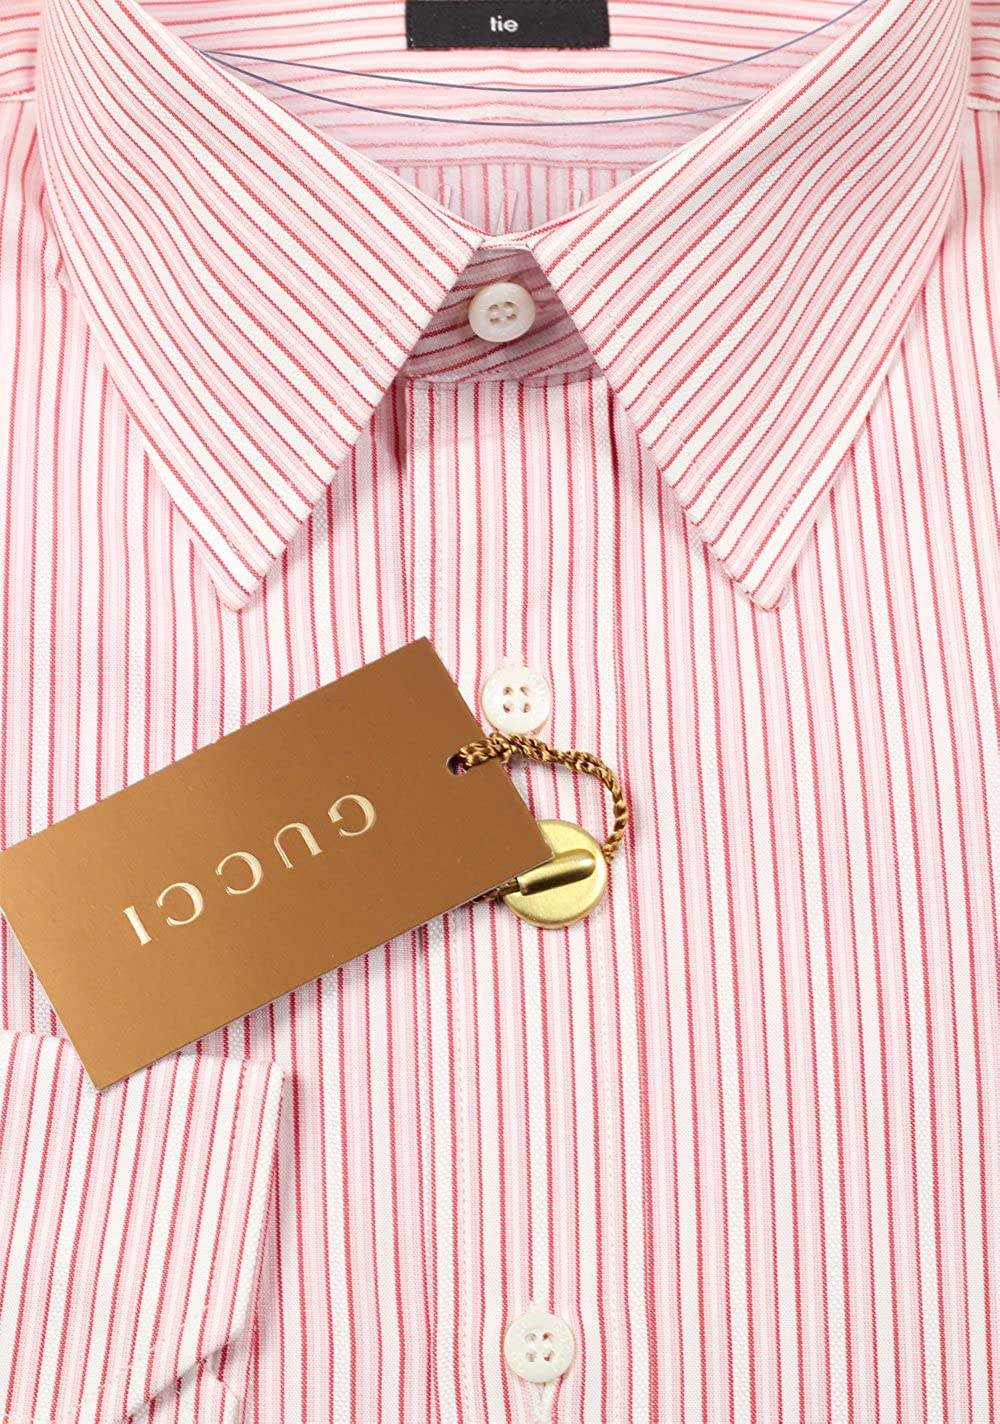 Gucci CL Striped Pink Dress Shirt Size 40/15, 75 U.S. Tie: Amazon ...